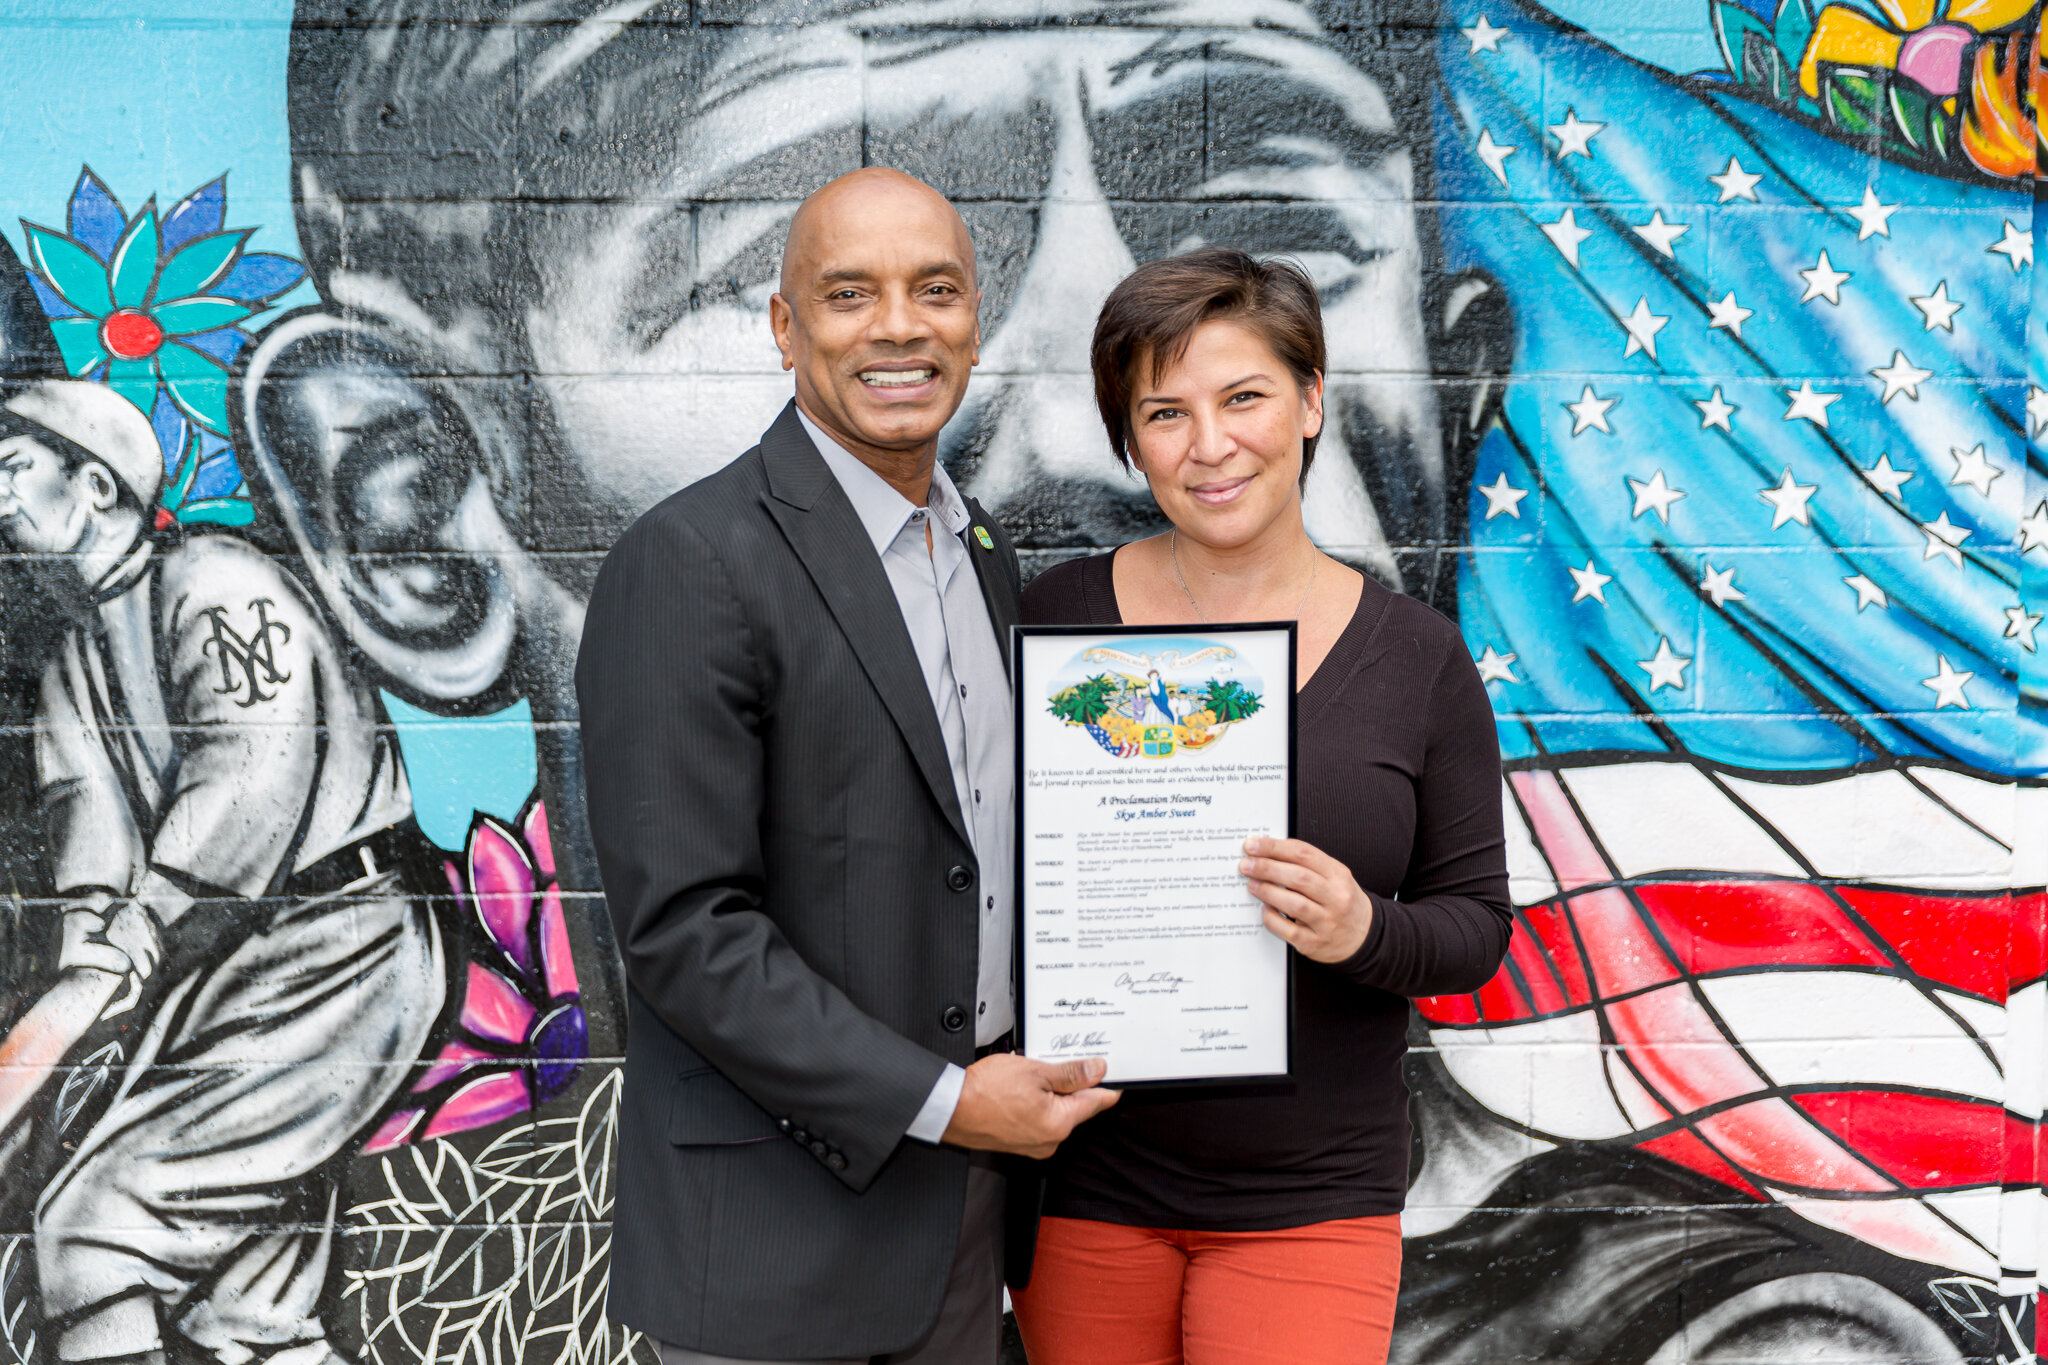 Council Member Alex Monteiro and Artist Skye Amber Sweet